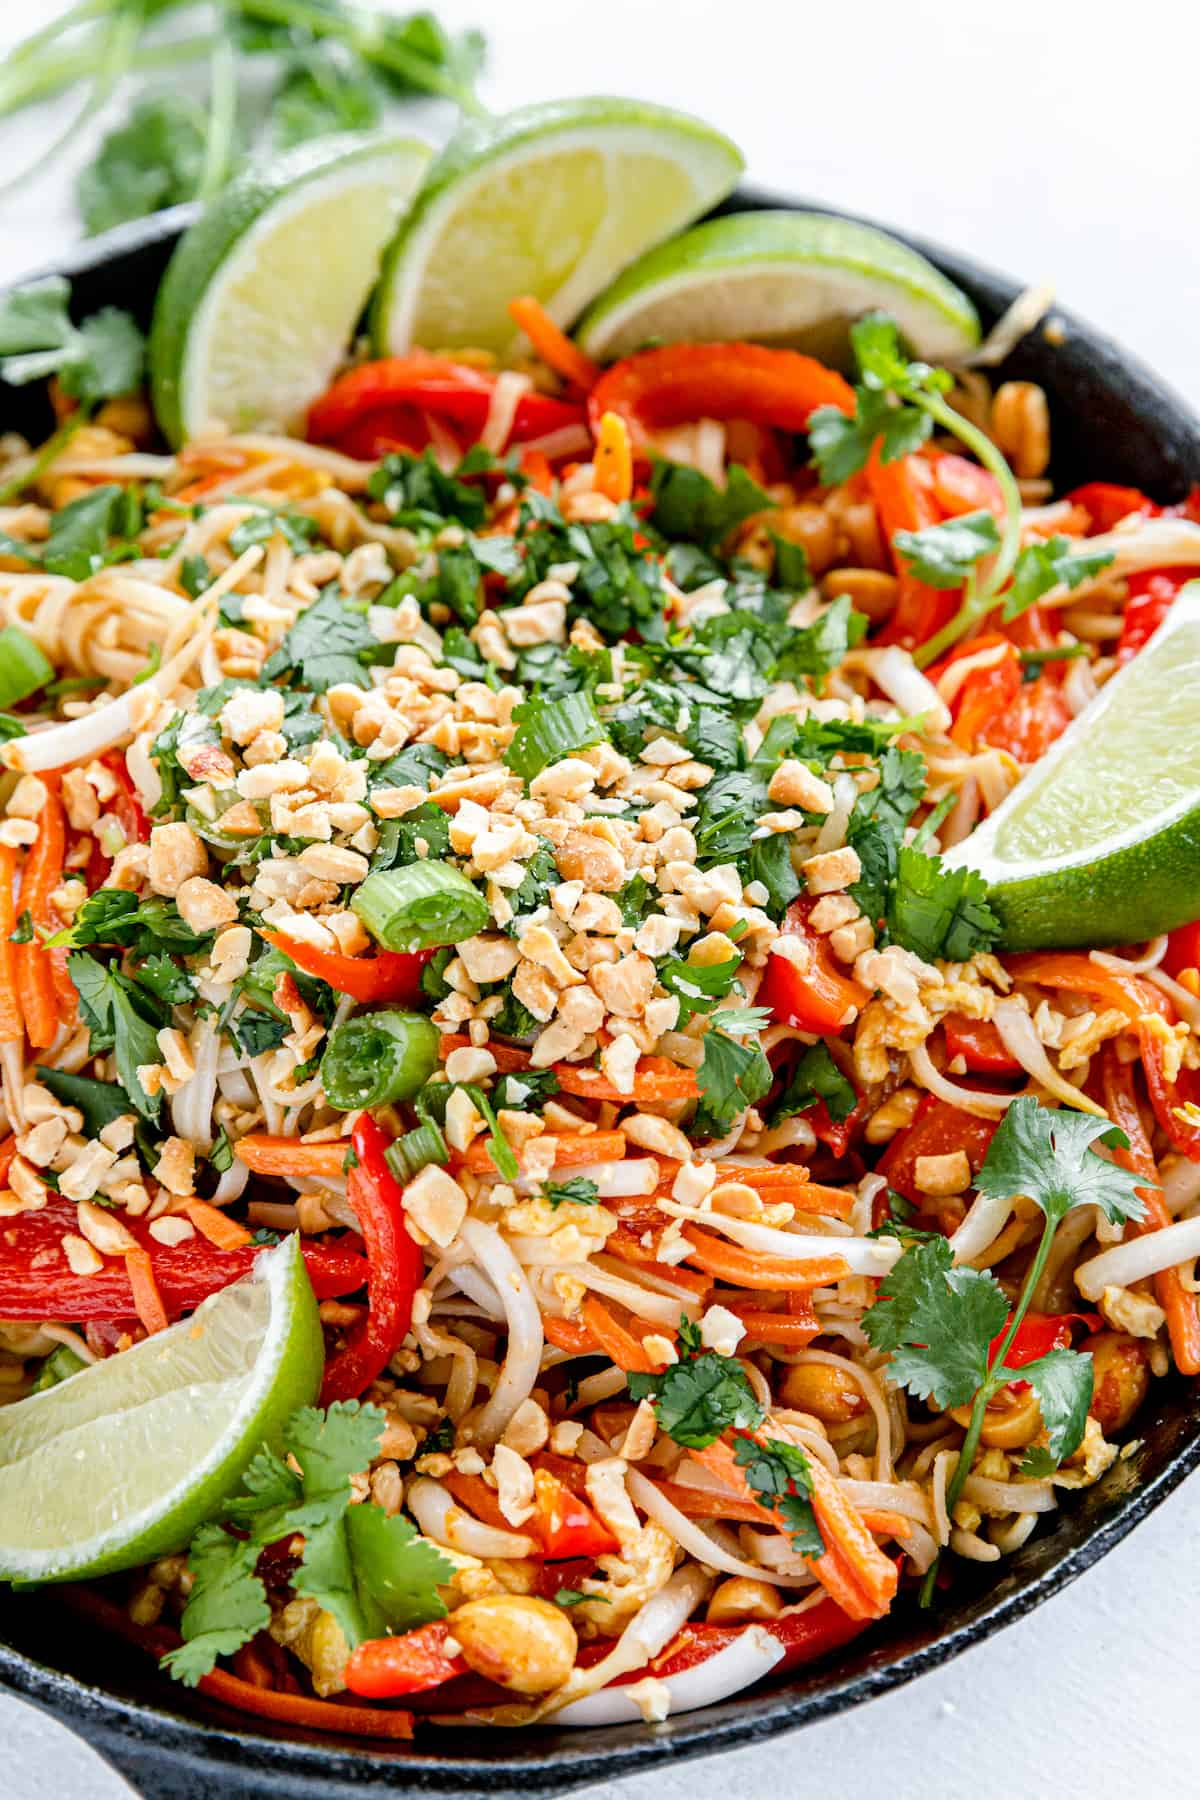 A Pan Filled with Homemade Pad Thai and Garnished with Fresh Lime Wedges